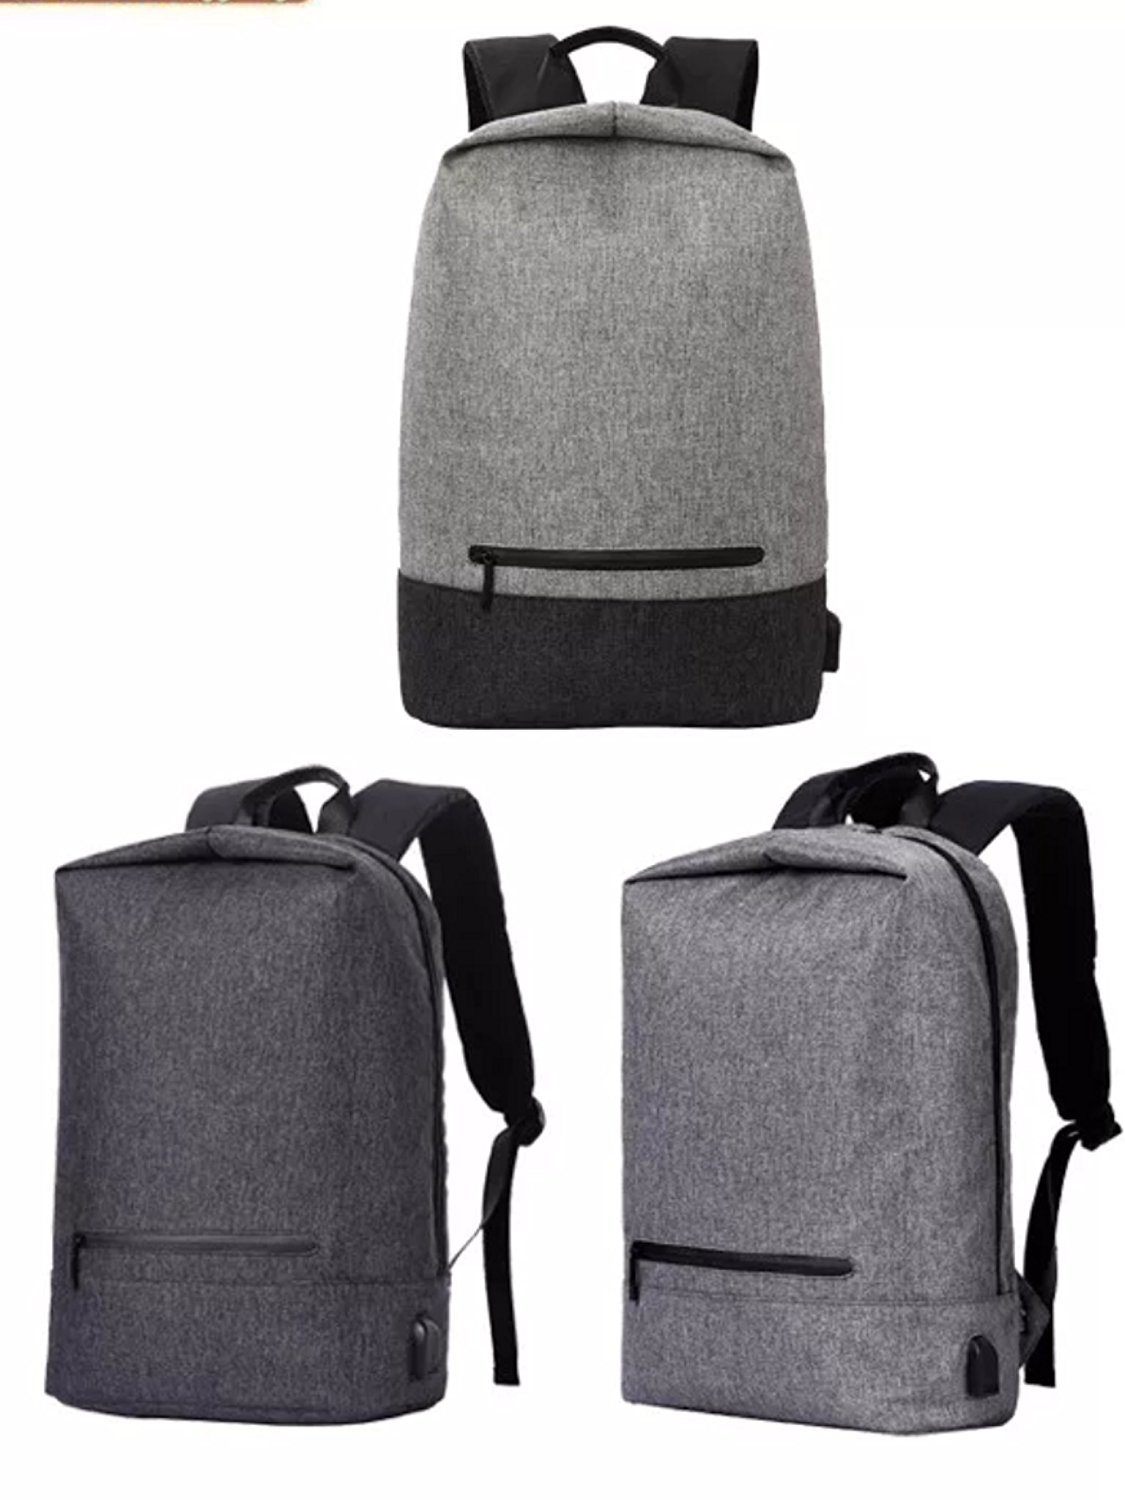 Book Backpack Cheap Book Bags for Teens School Backpacks